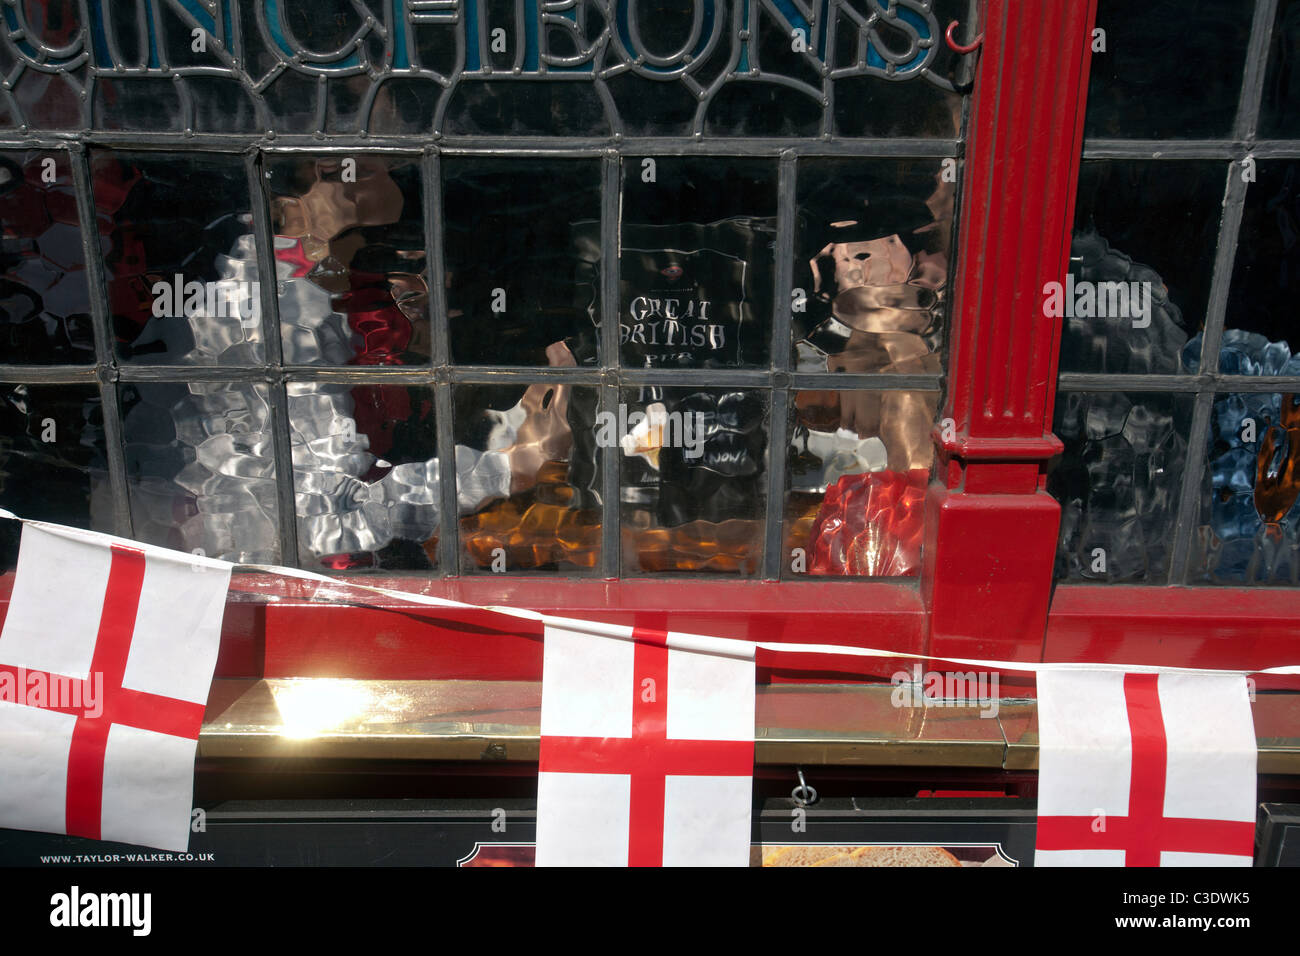 london pub window - Stock Image